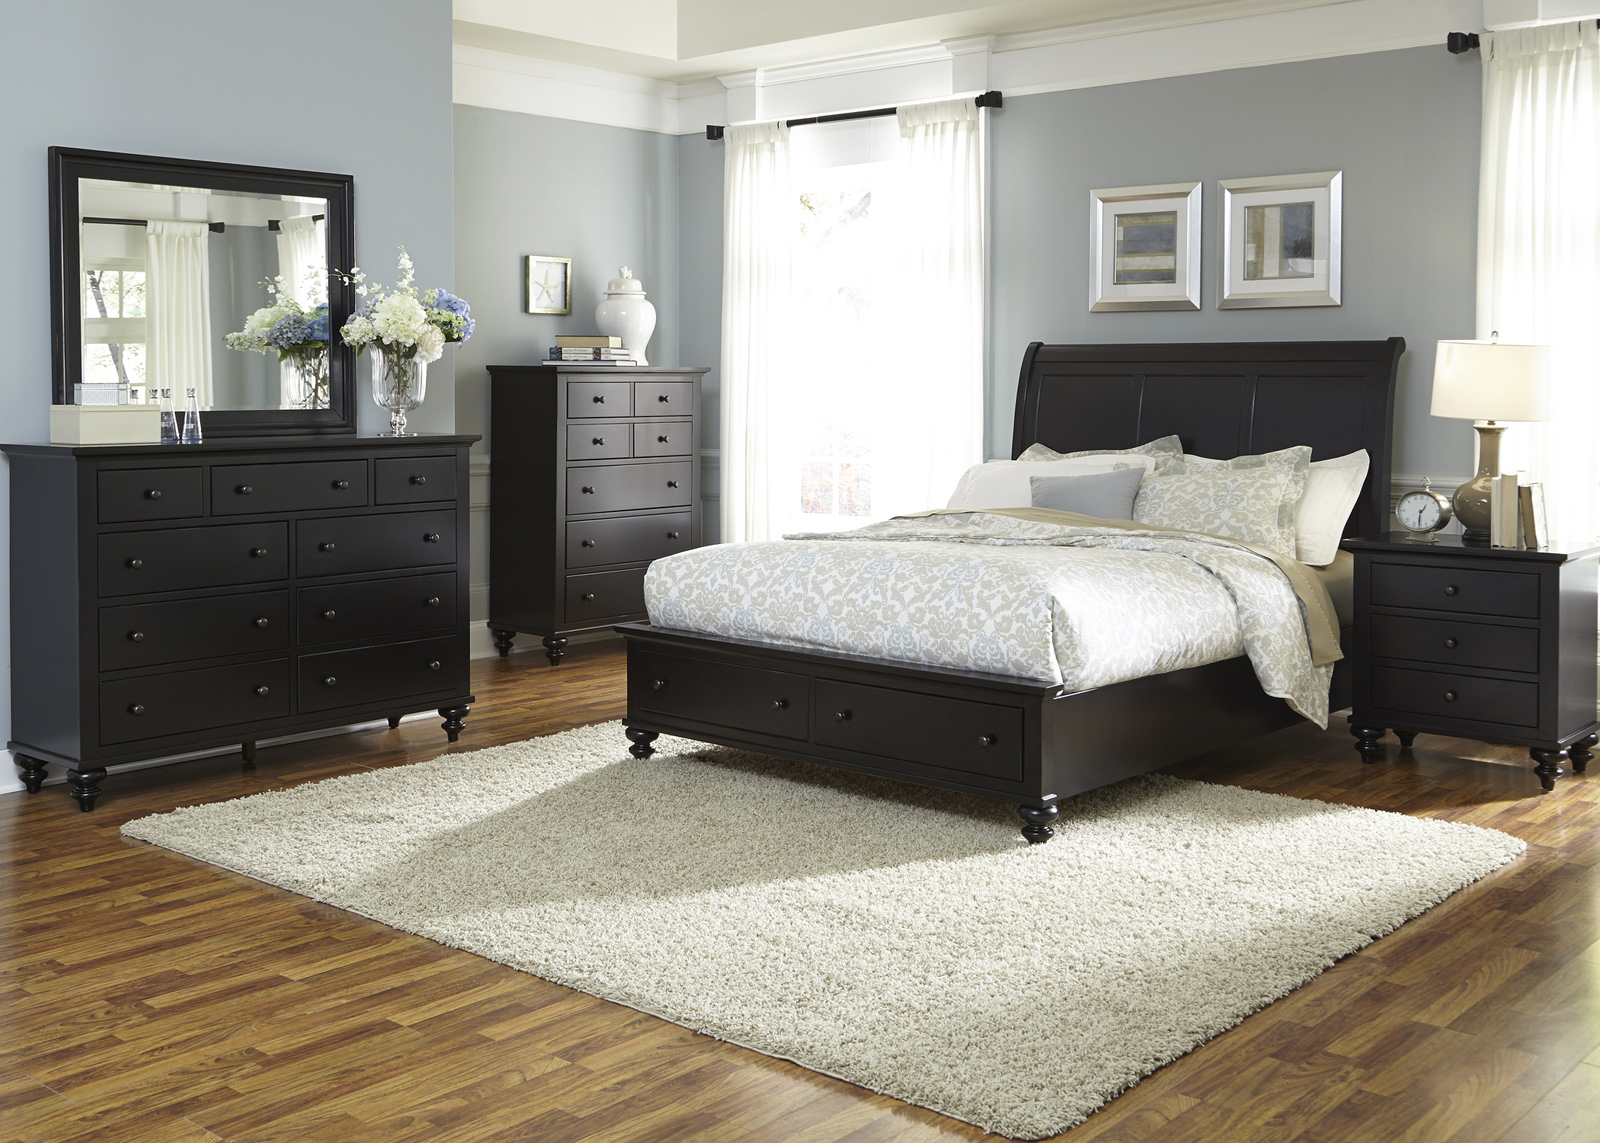 hamilton bedroom set liberty furniture hamilton iii 4 storage bedroom set 11765